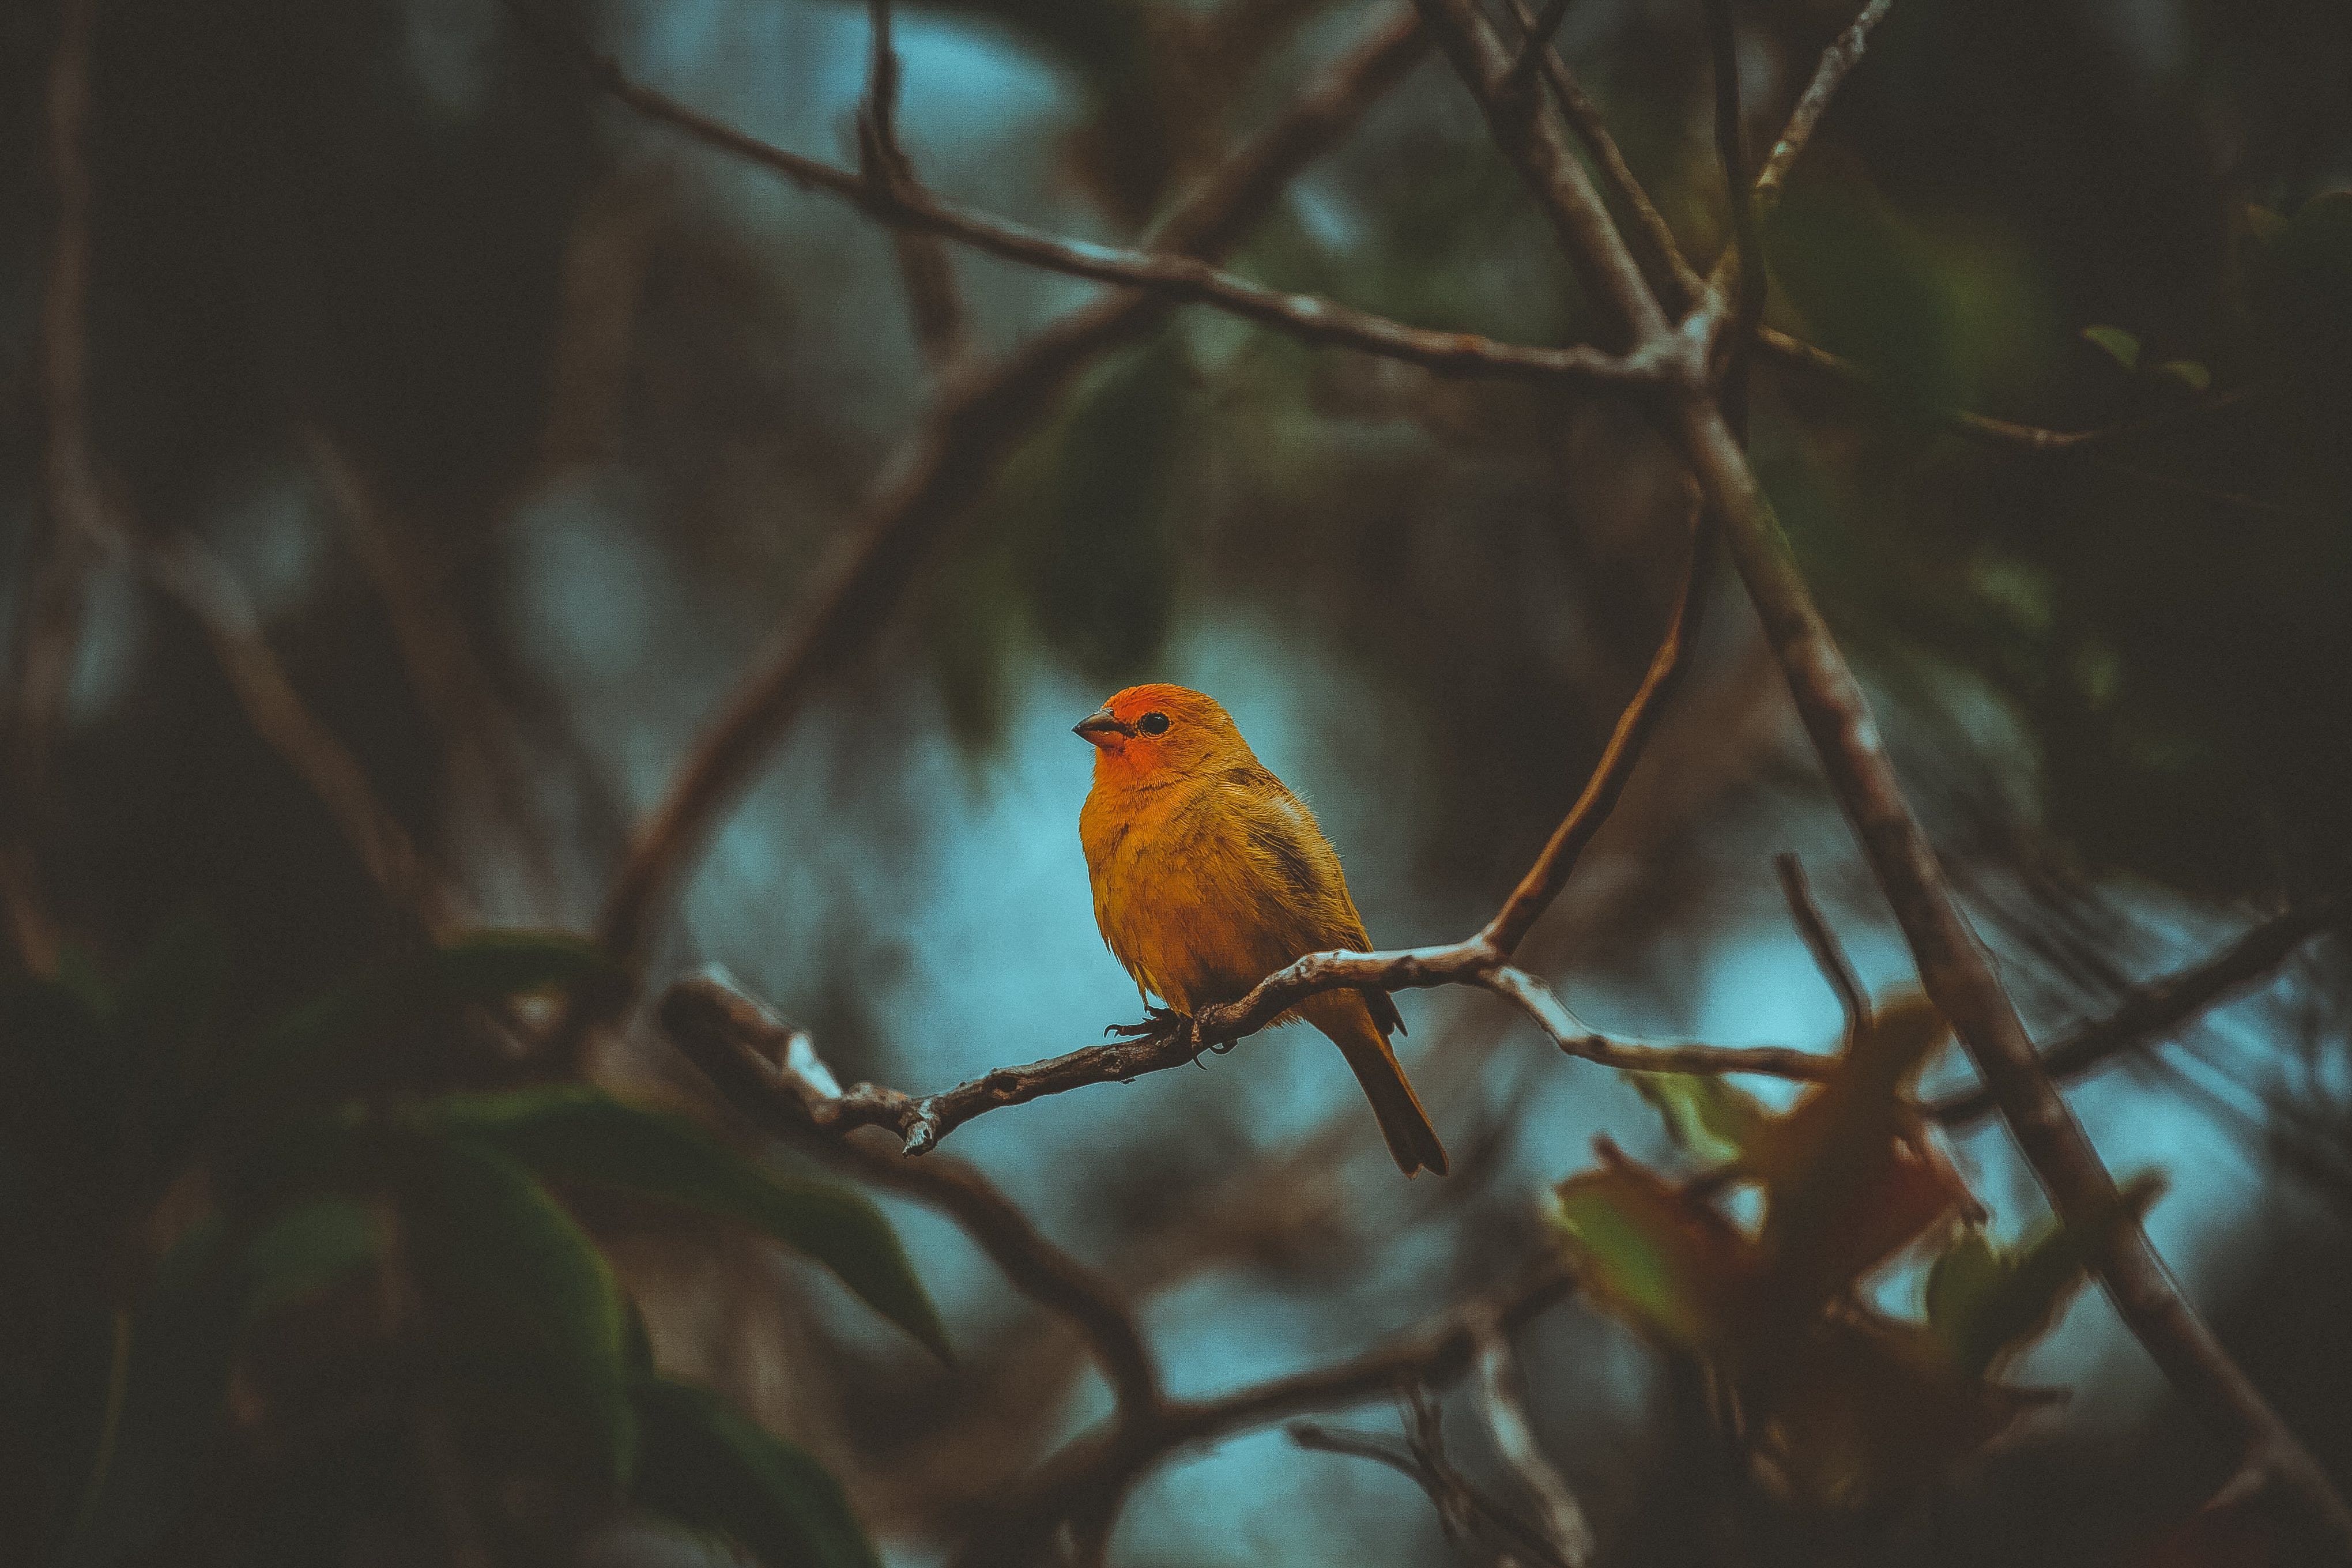 Red and Yellow Bird on Branches